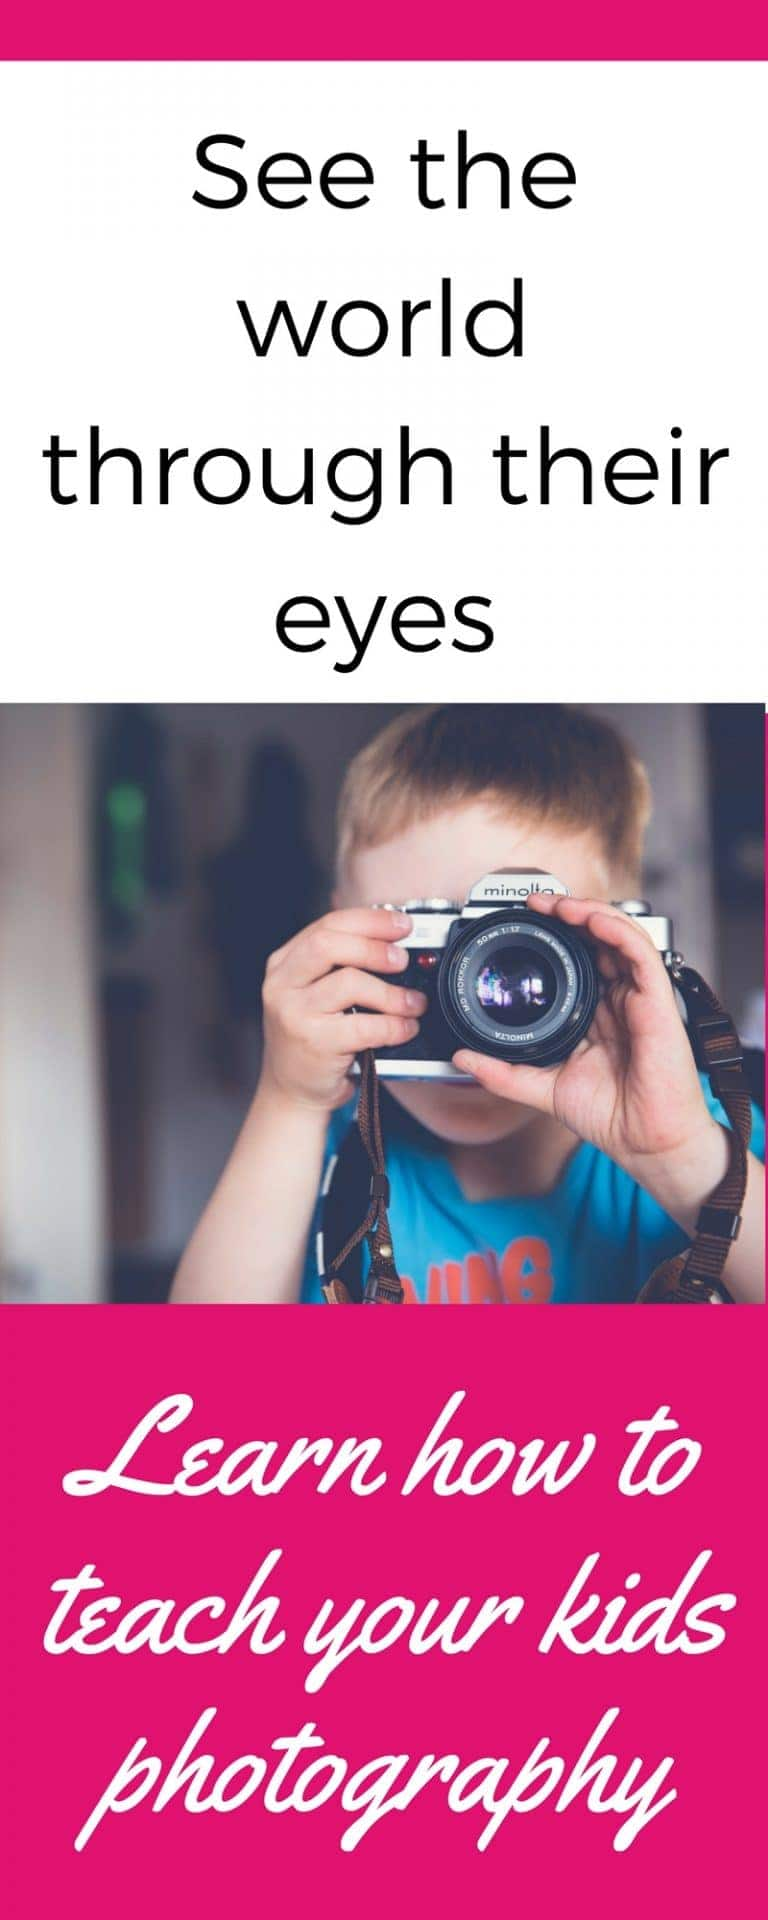 In depth but easy to follow guide for teaching your kids photography. It's a great way to bond with them and see the world through their eyes!